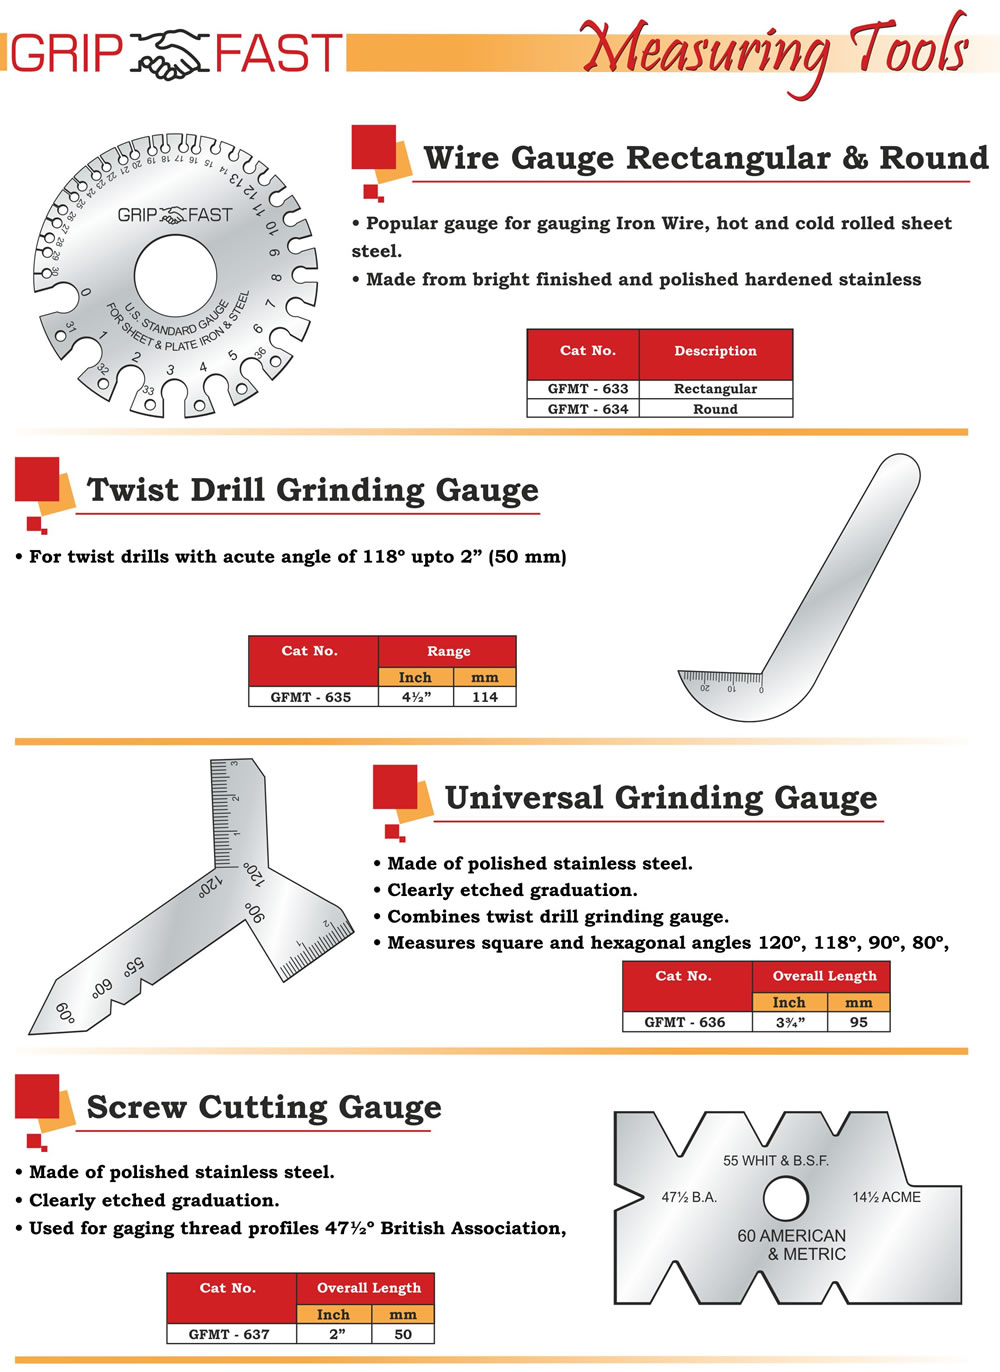 Tools manufacturers india india tools manufacturer tool holder wire gauge twist drill grinding gauge universal grinding gauge screw cutting gauge greentooth Image collections